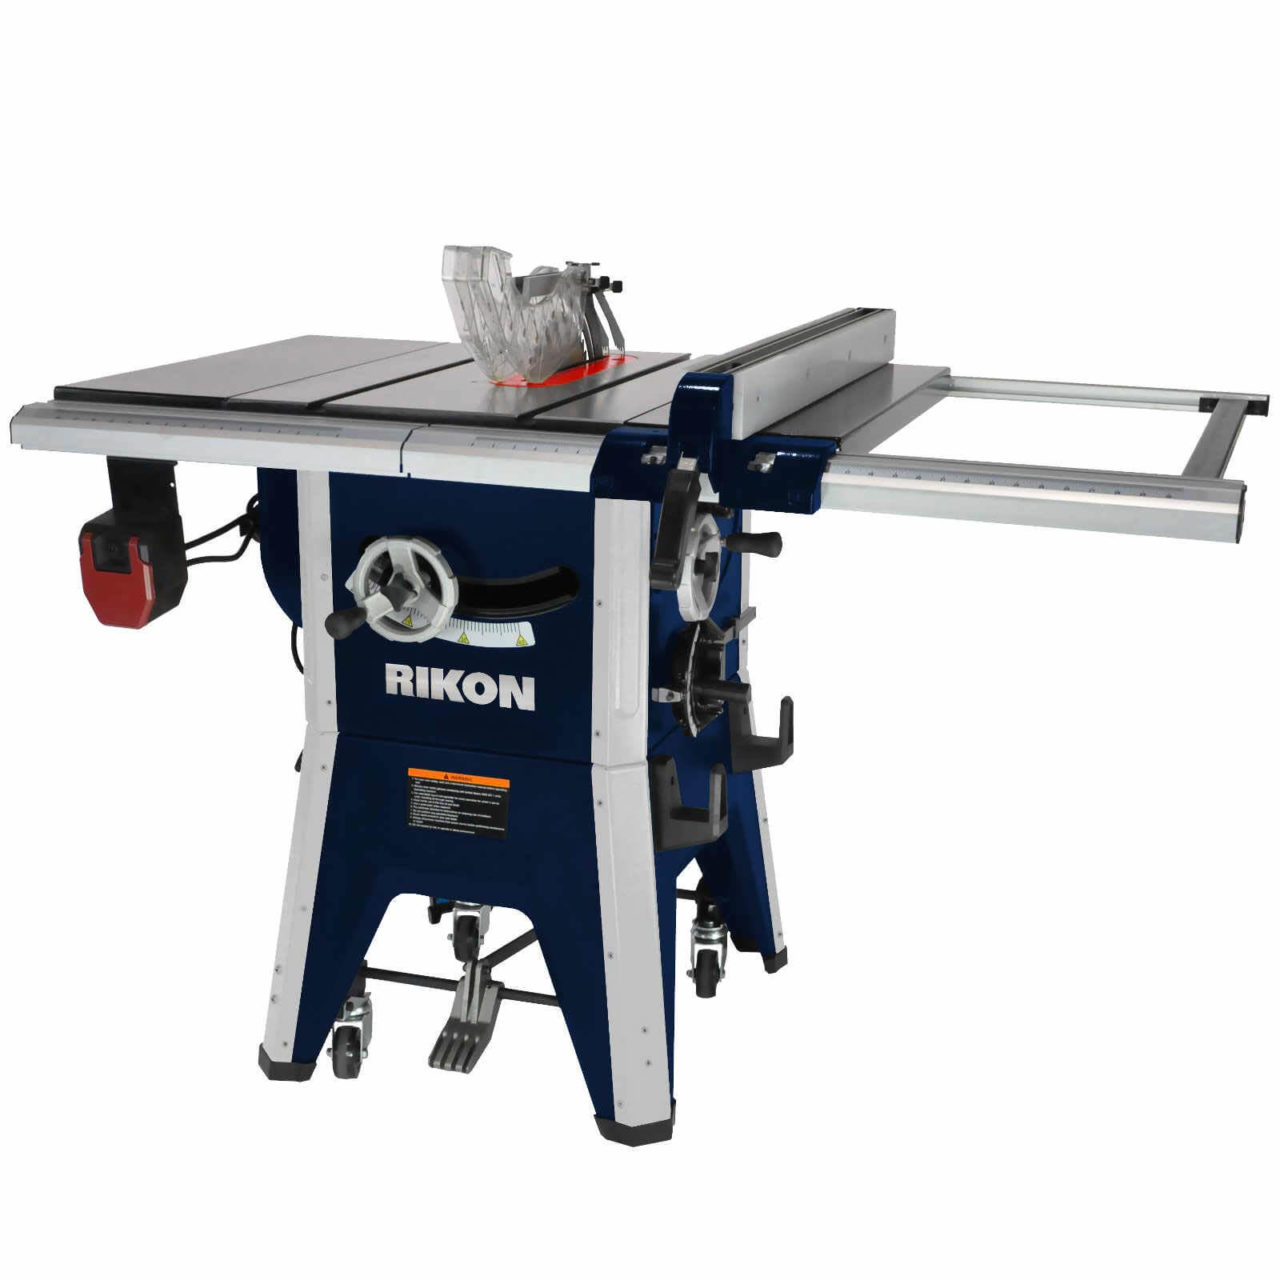 Rikon 10 Contractor Saw - Best Budget Contractor Table Saw